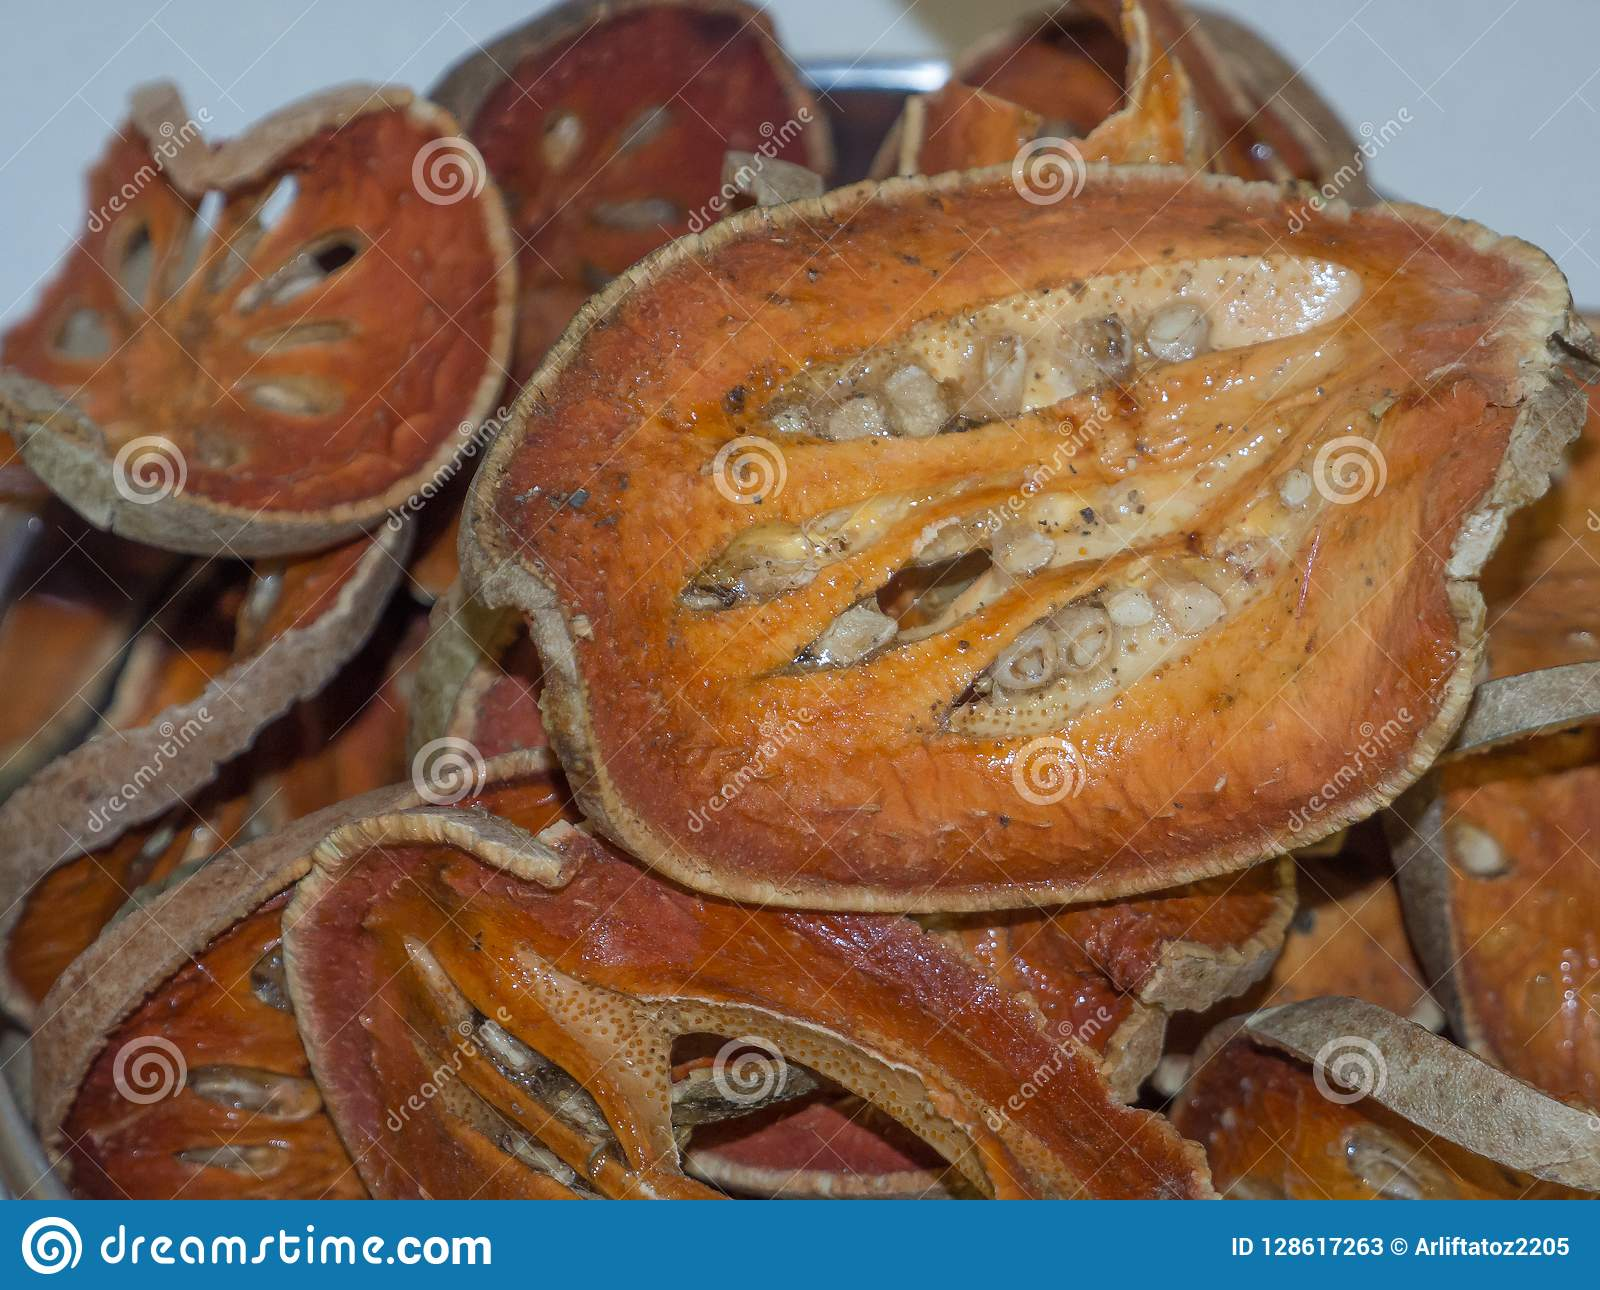 The Dried bael fruit Aegle marmelos in close up.